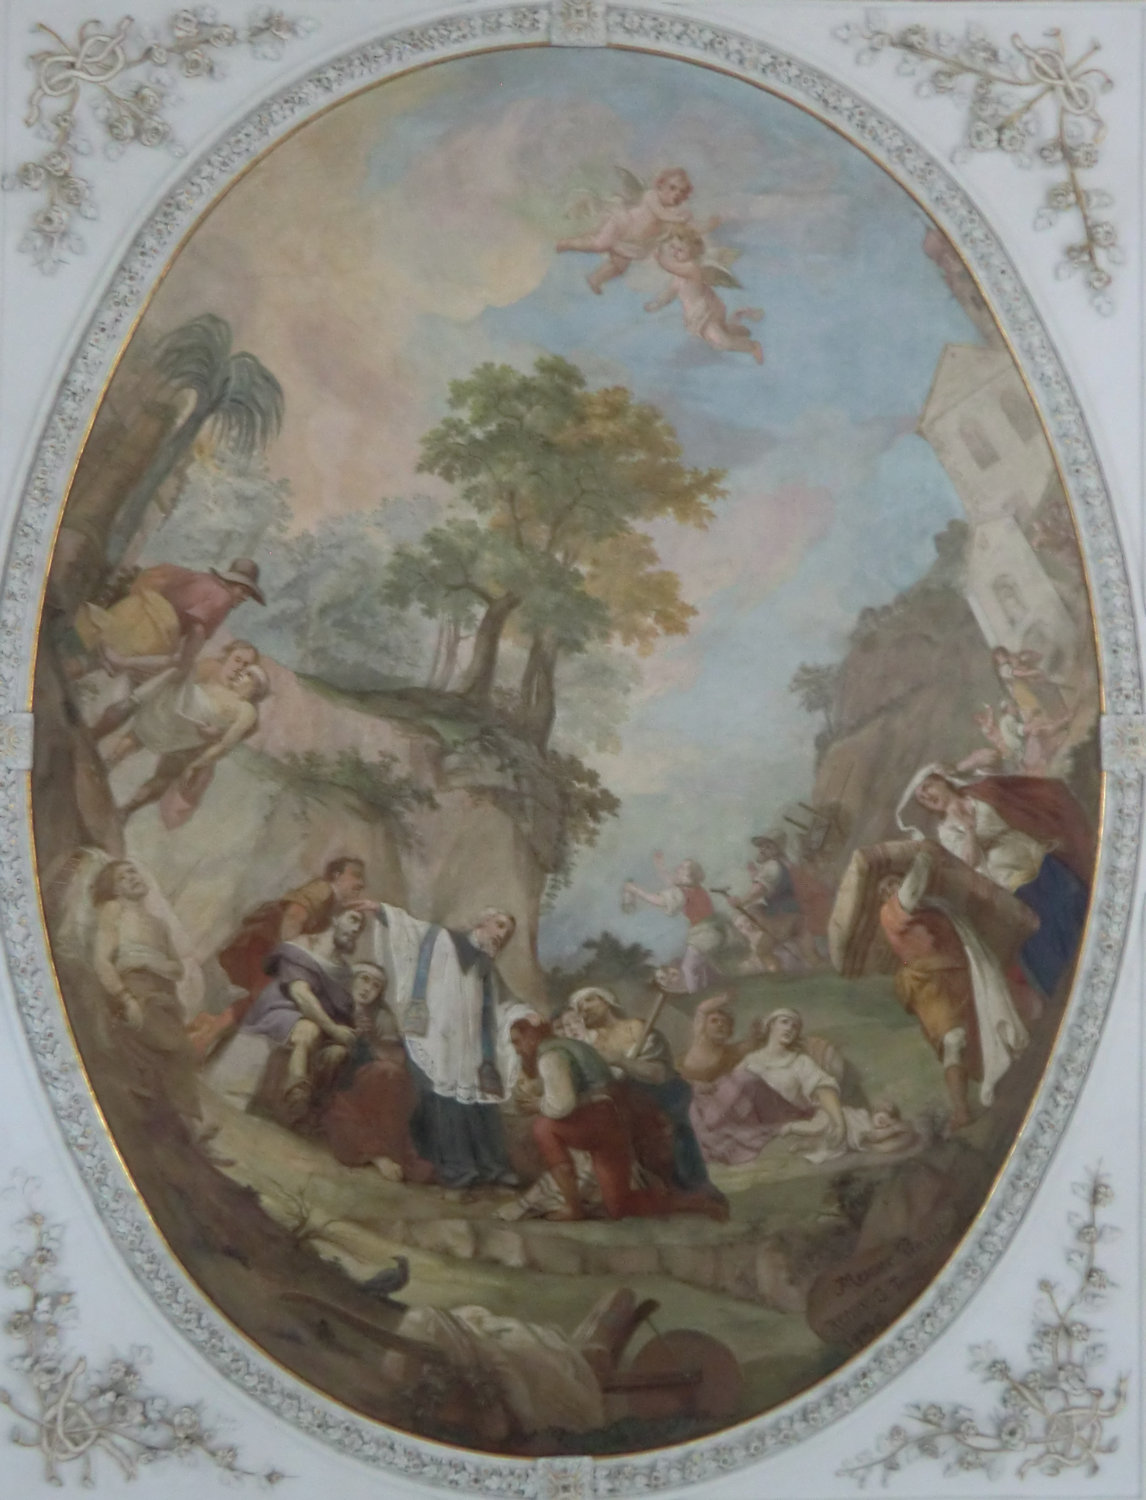 Joseph Anton Messmer und Johann Nepomuk Messmer: Deckenbild, 1798, in der Kirche in Beinwil